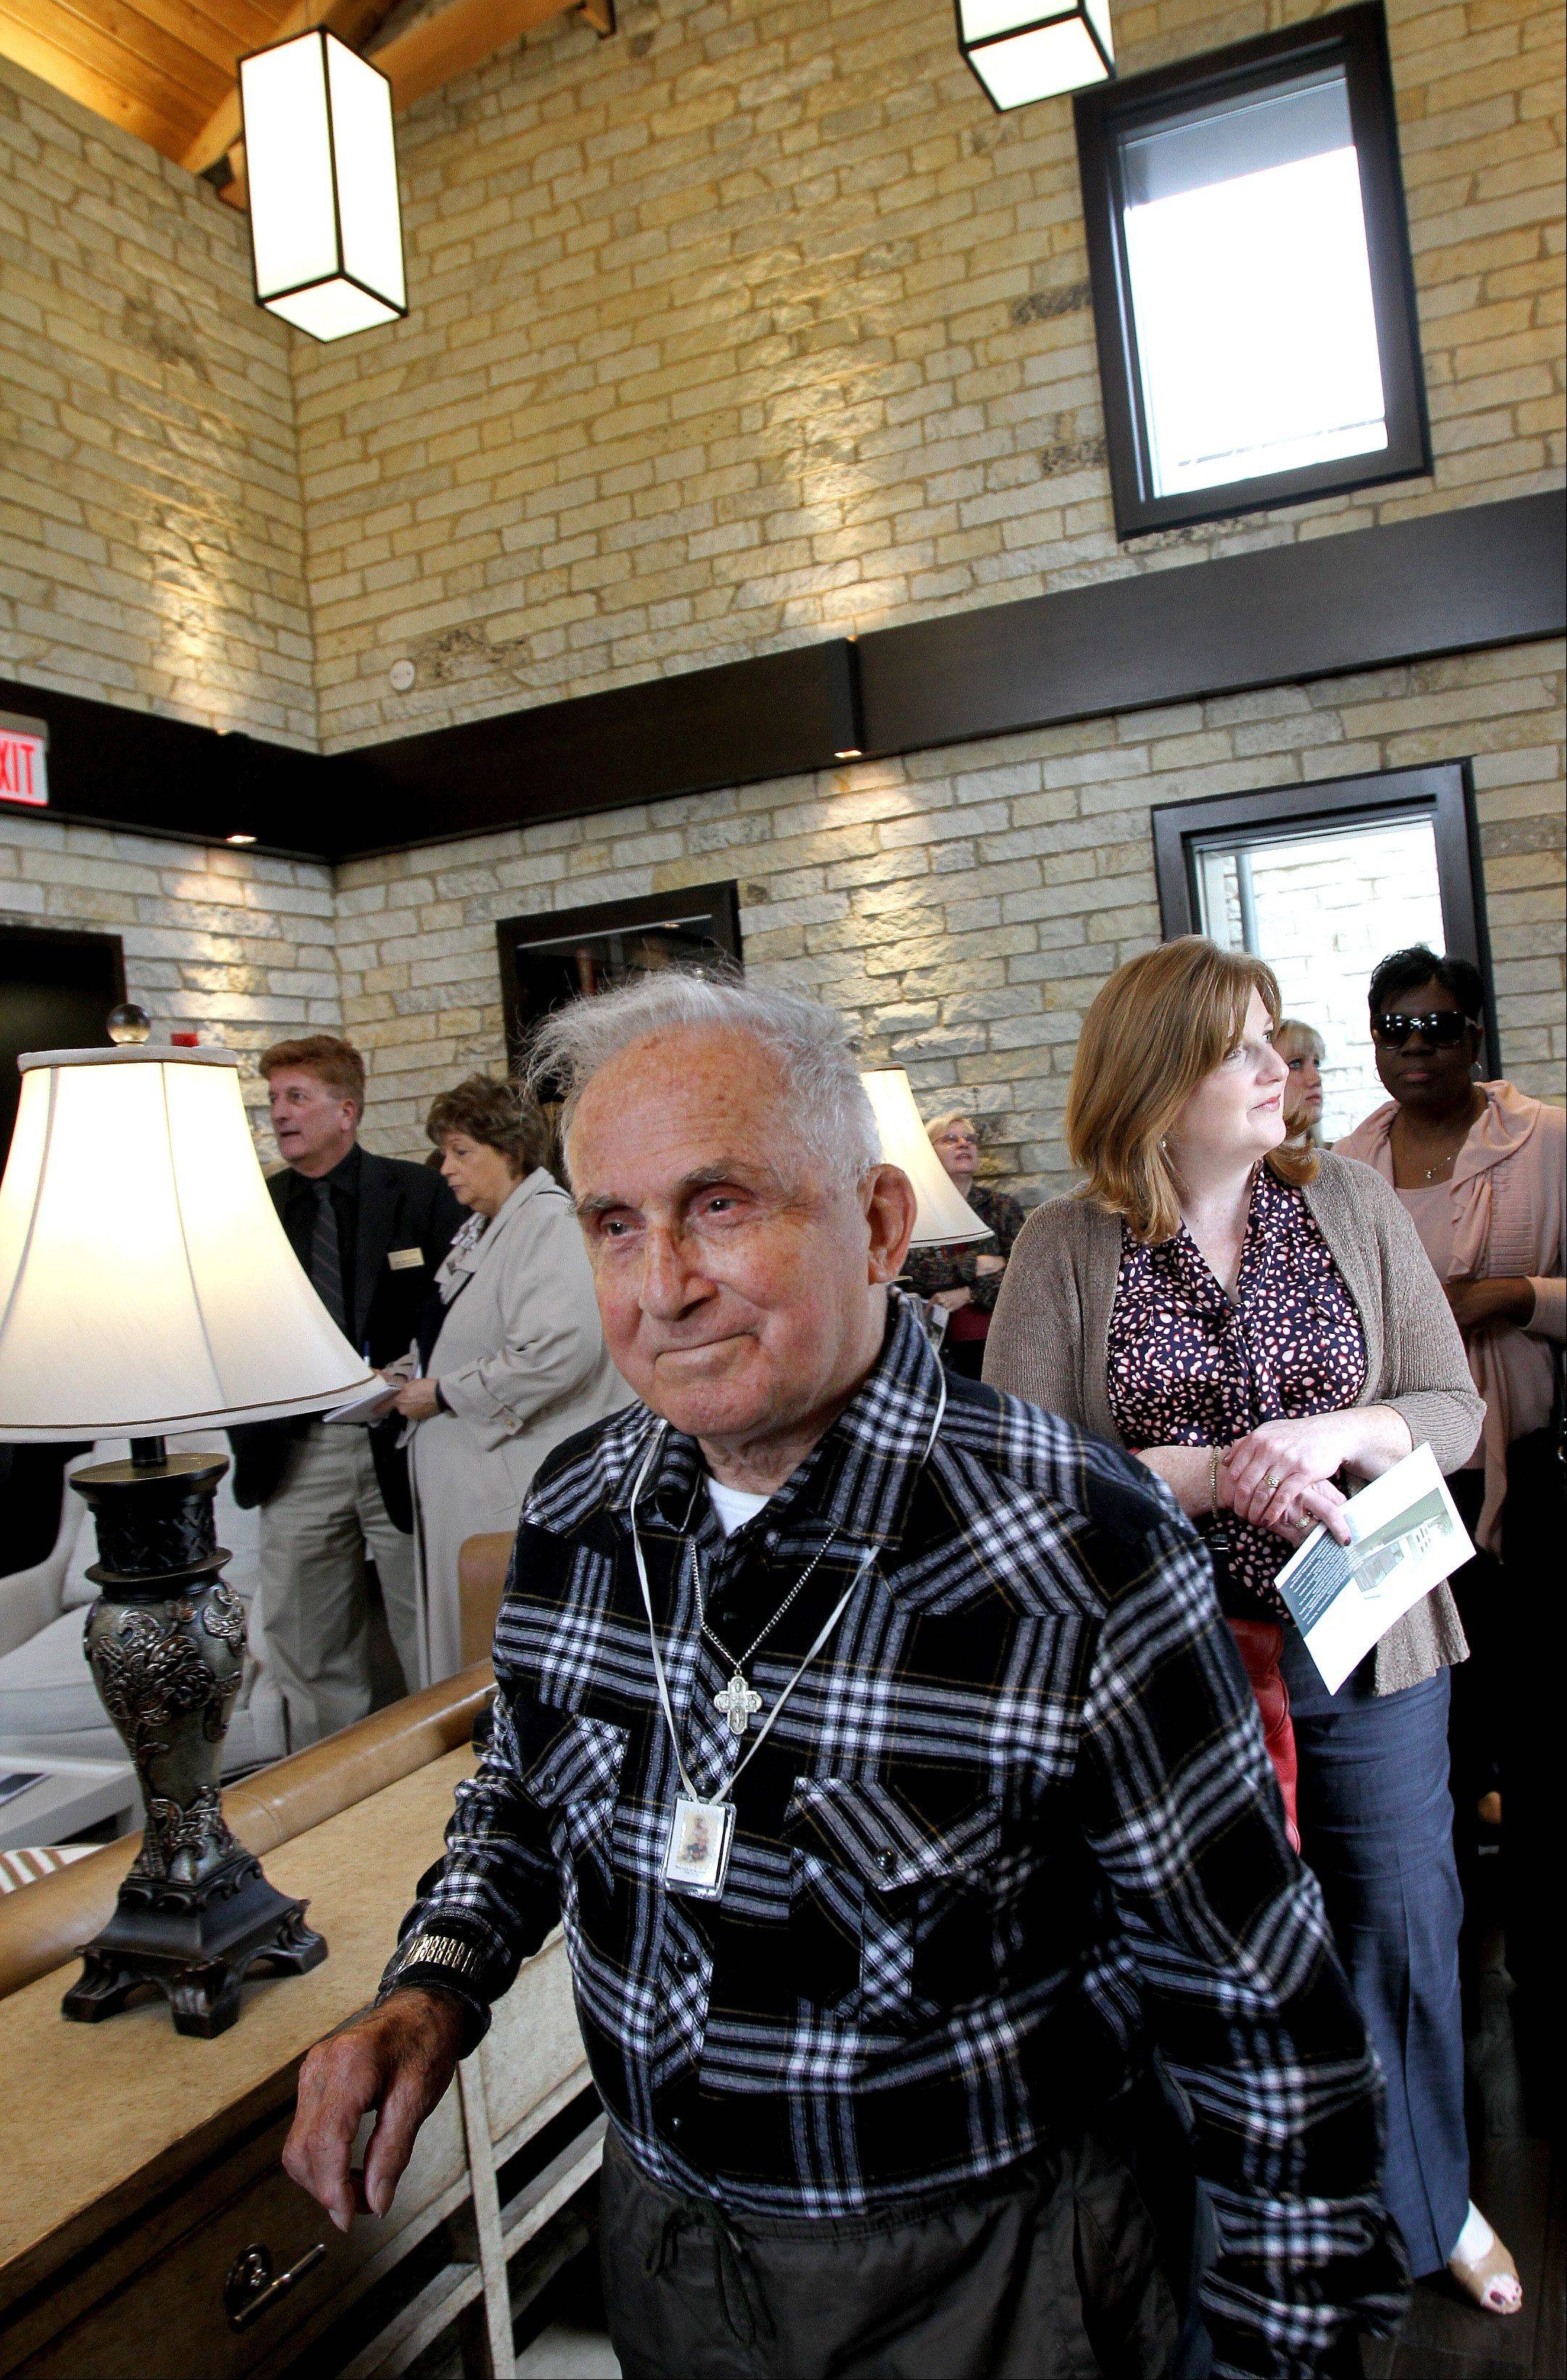 Arthur Denardo takes a look at the unveiling of the Neff Welcome Center at Benedictine University in Lisle. Denardo was the last resident of the historic Neff farmhouse and lived there for 48 years. He now lives at Benedictine Abbey.